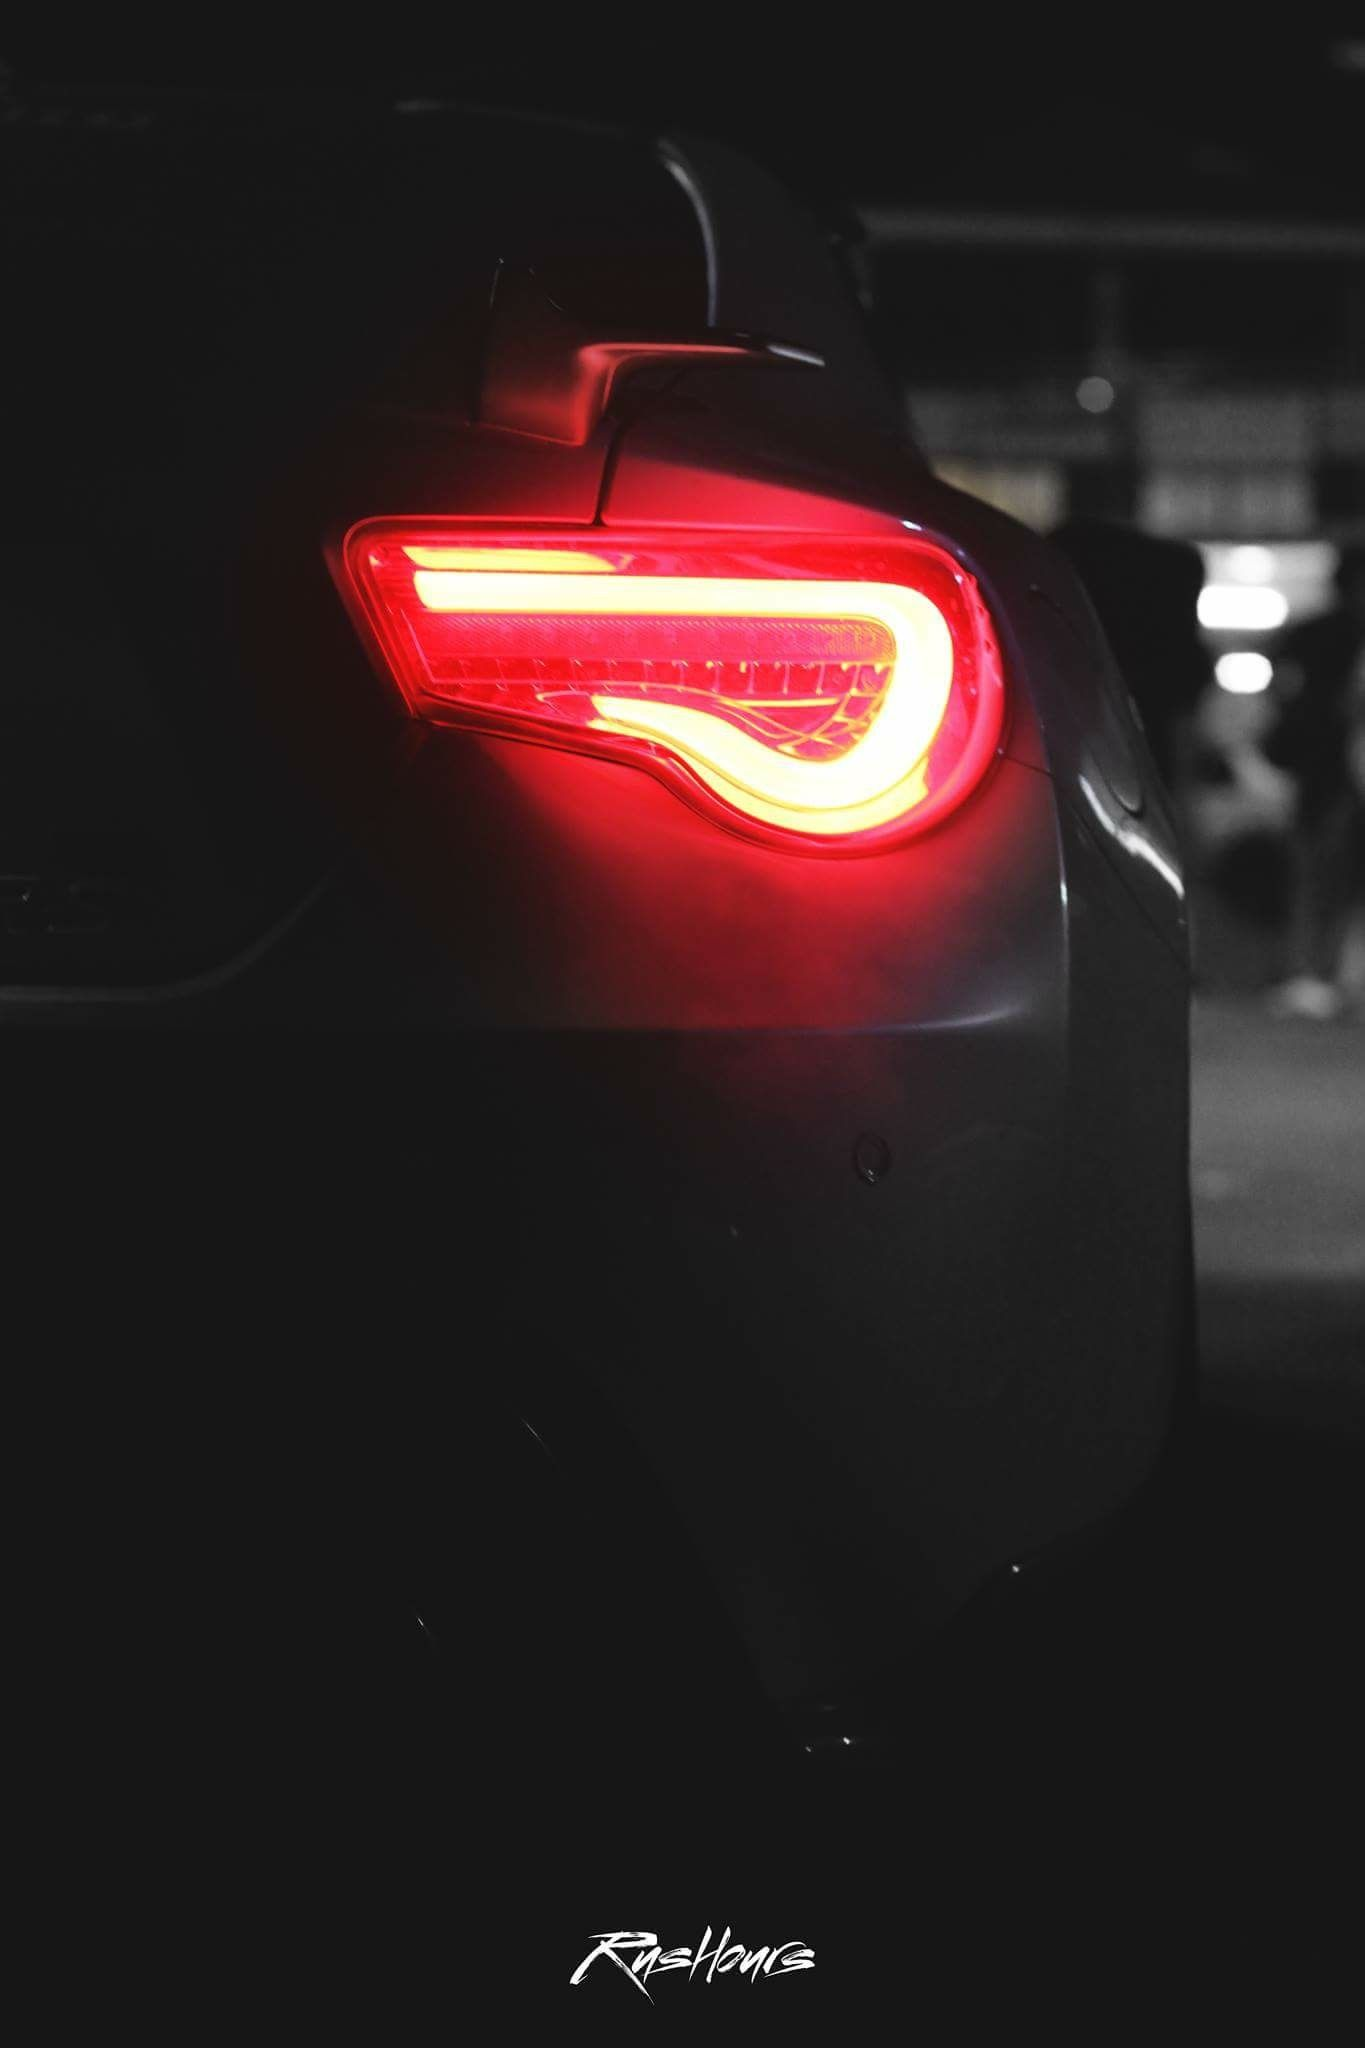 Brz Iphone Wallpaper Madmolre Iphone Wallpaper Subaru